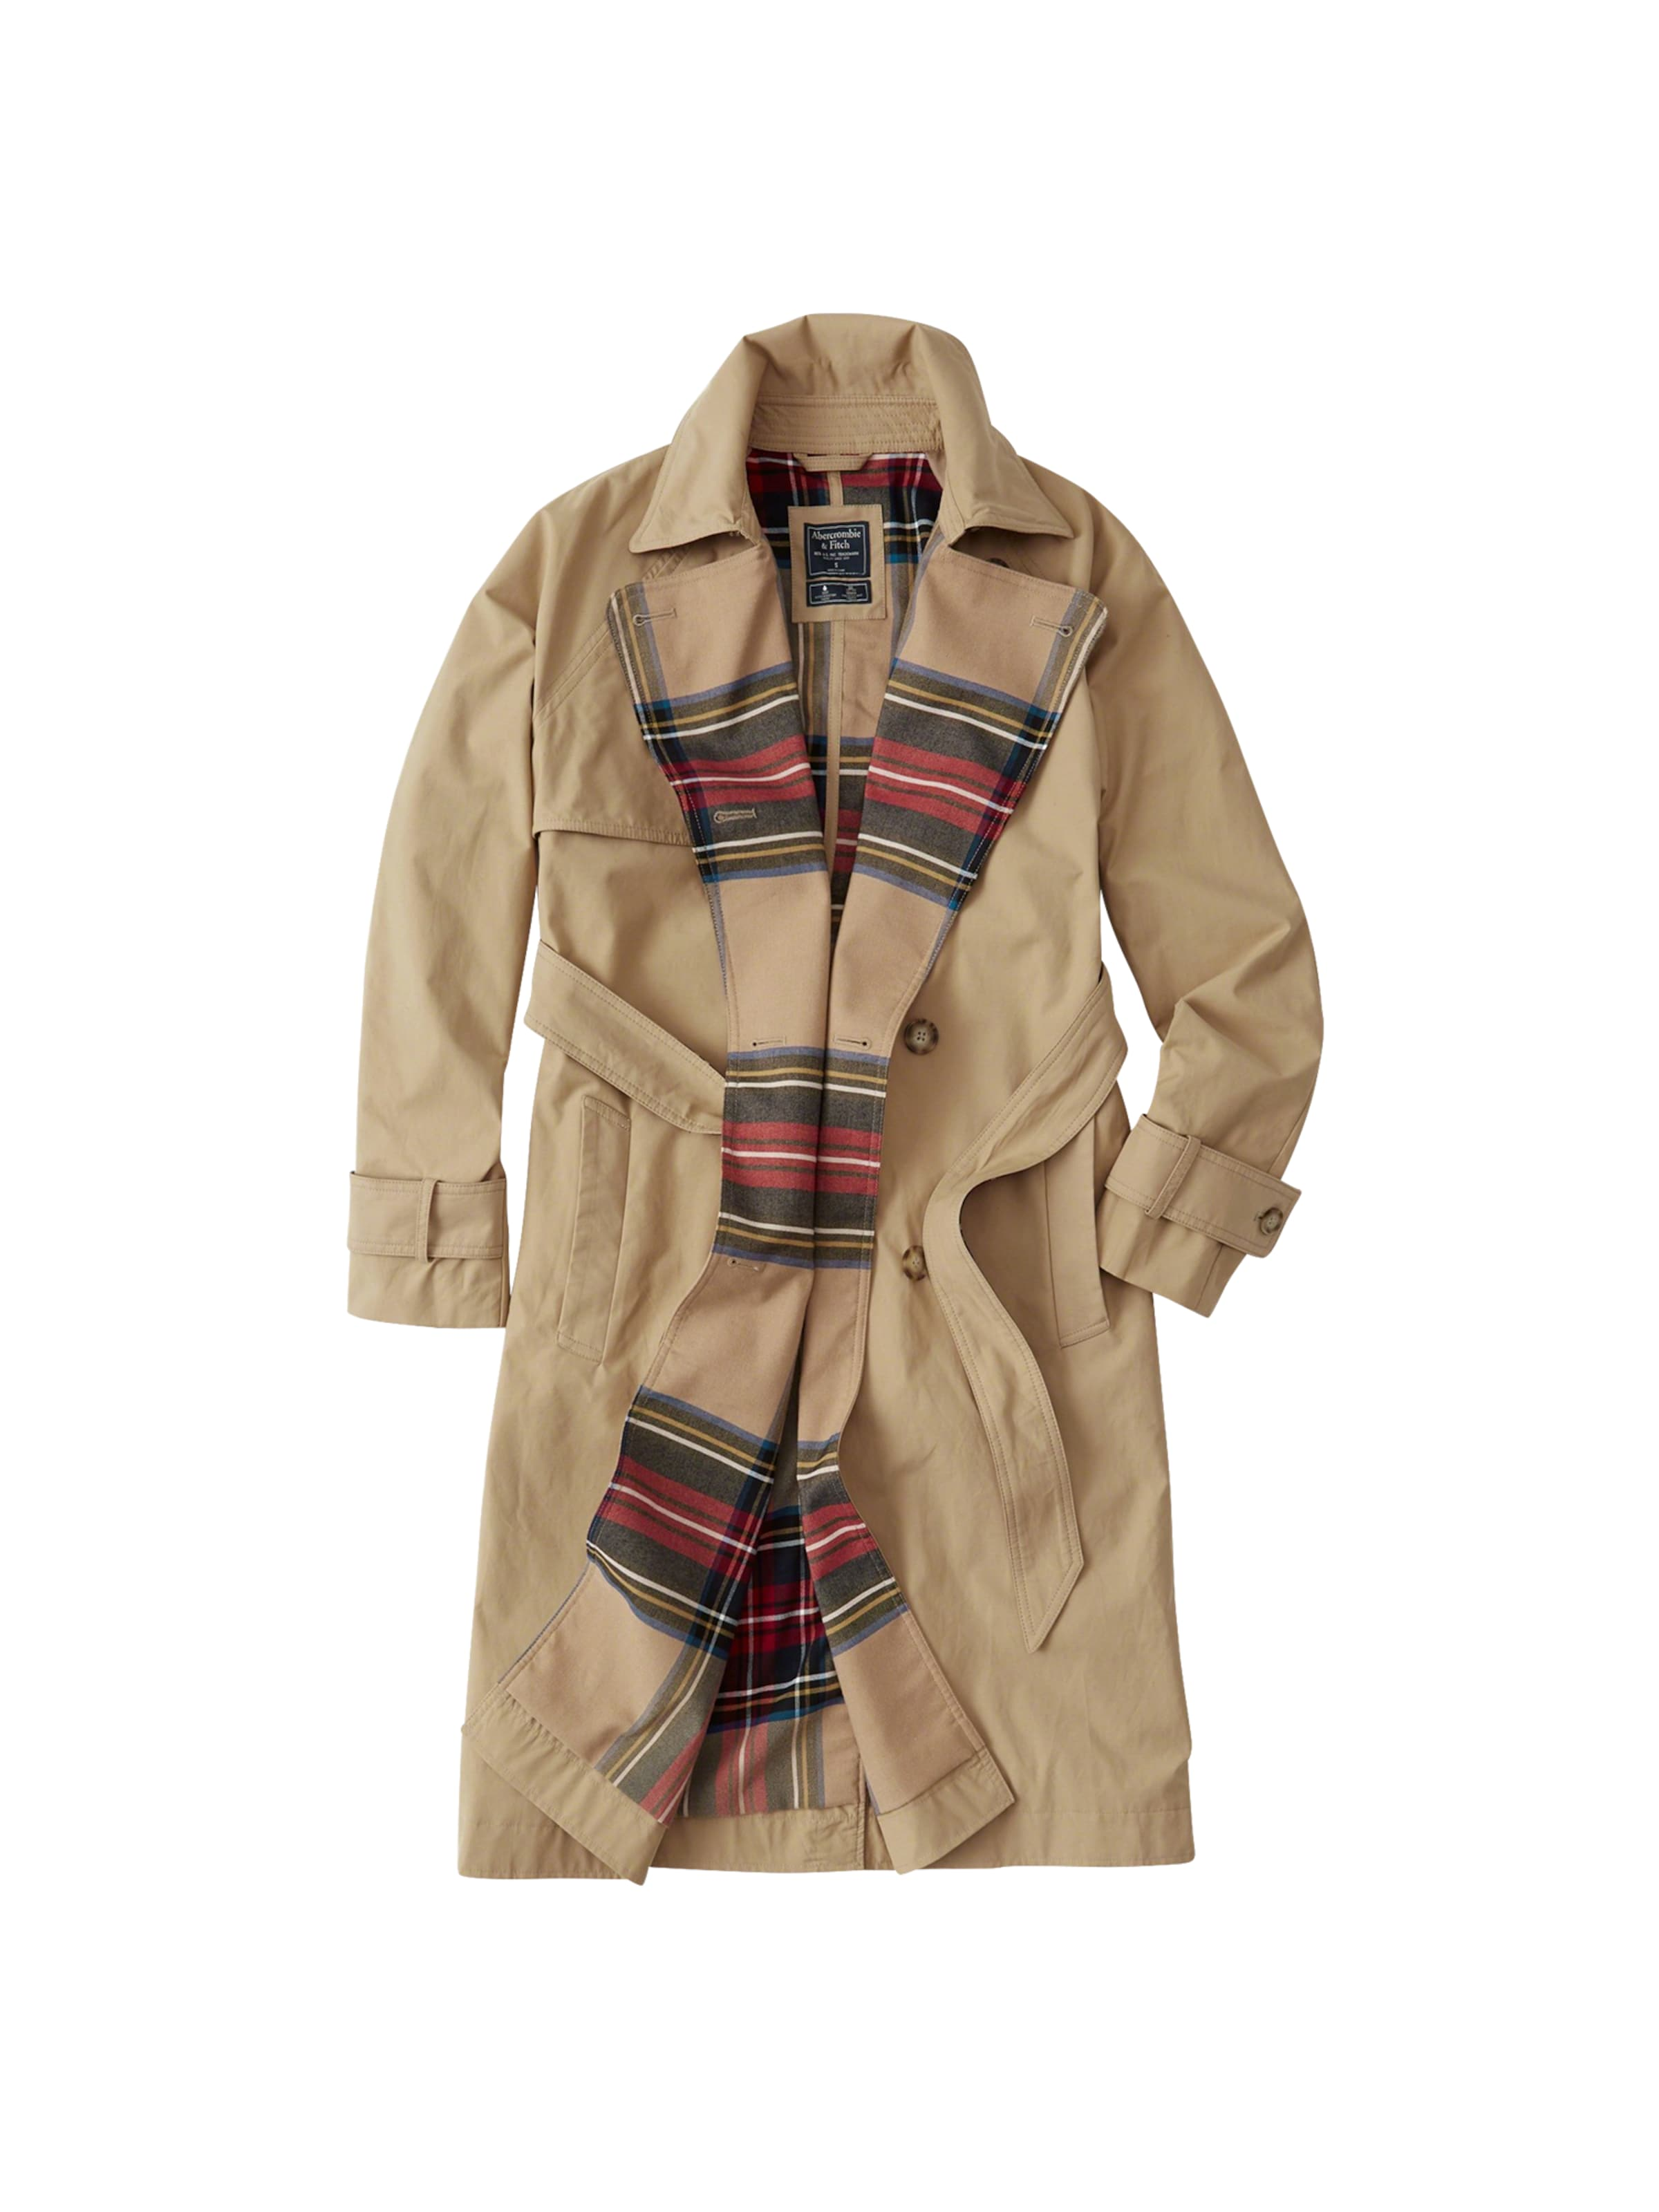 winter 'xm18 Trench' Abercrombieamp; Fitch In Mantel Braun P8nO0wkX